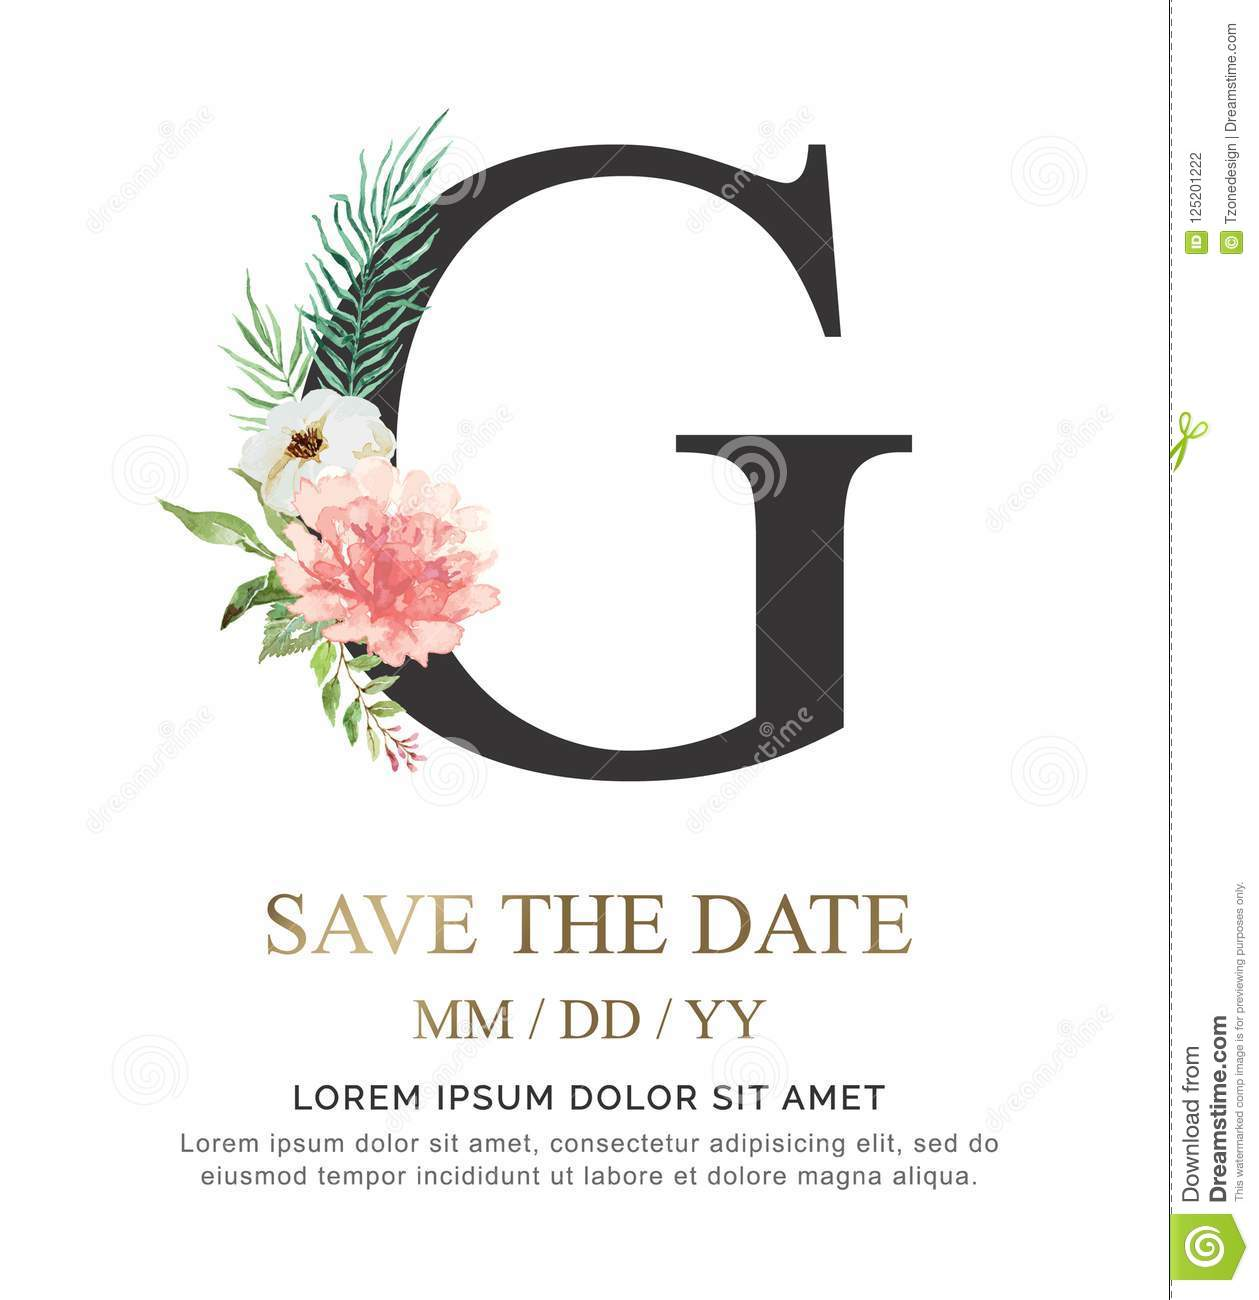 Letter G Hand Paint Watercolor Flower And Leaf For Wedding And